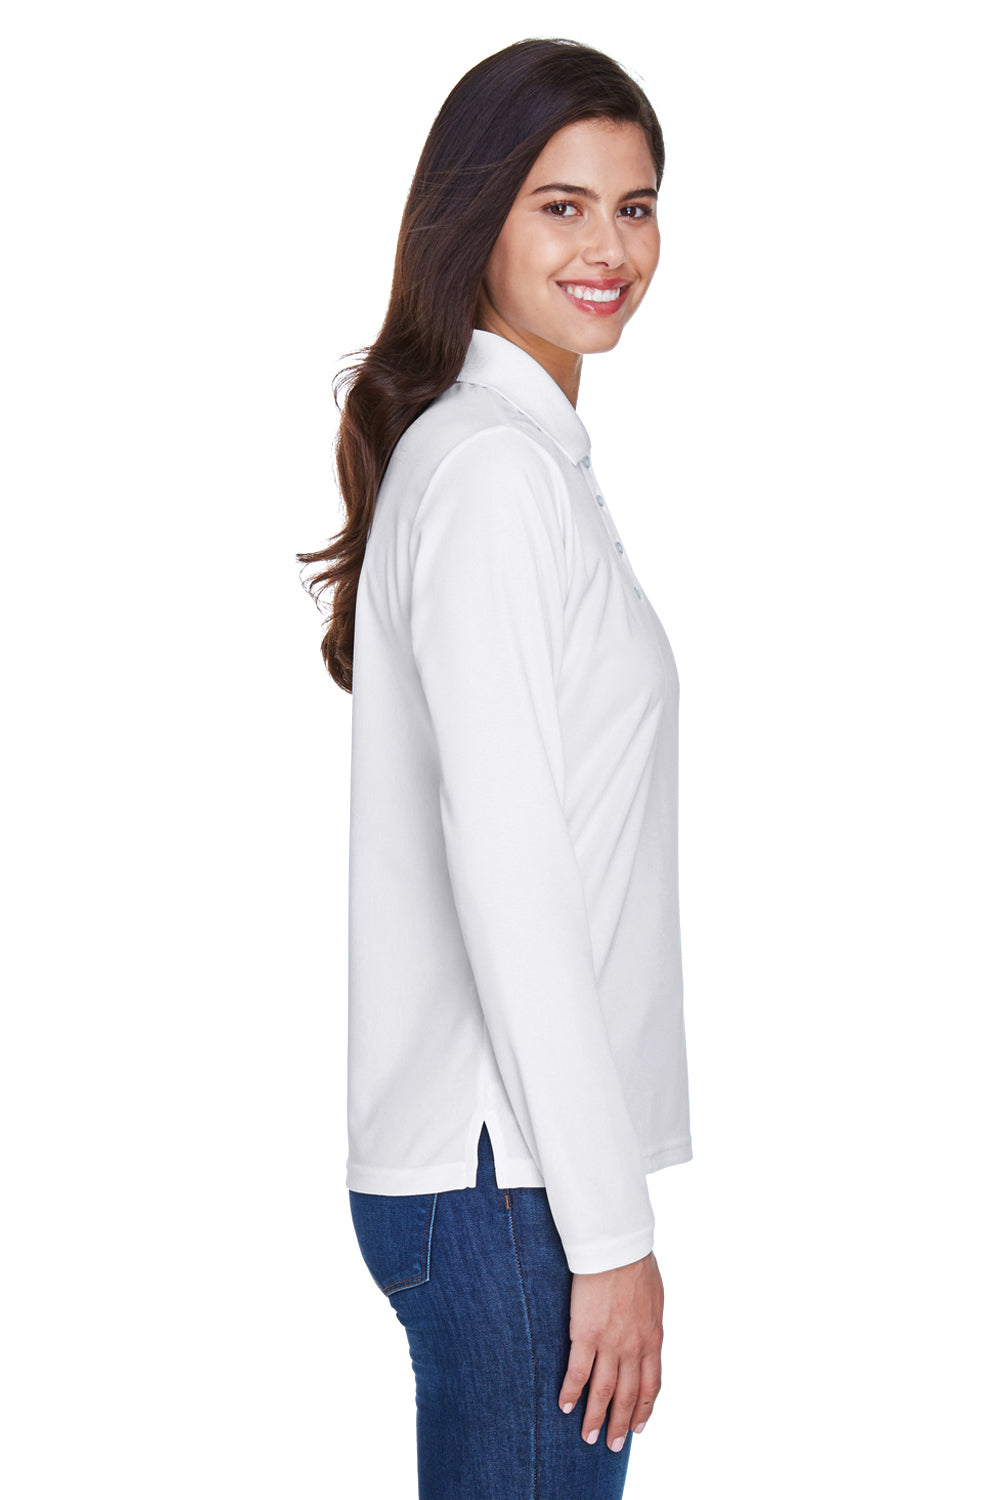 Core 365 78192 Womens Pinnacle Performance Moisture Wicking Long Sleeve Polo Shirt White Side